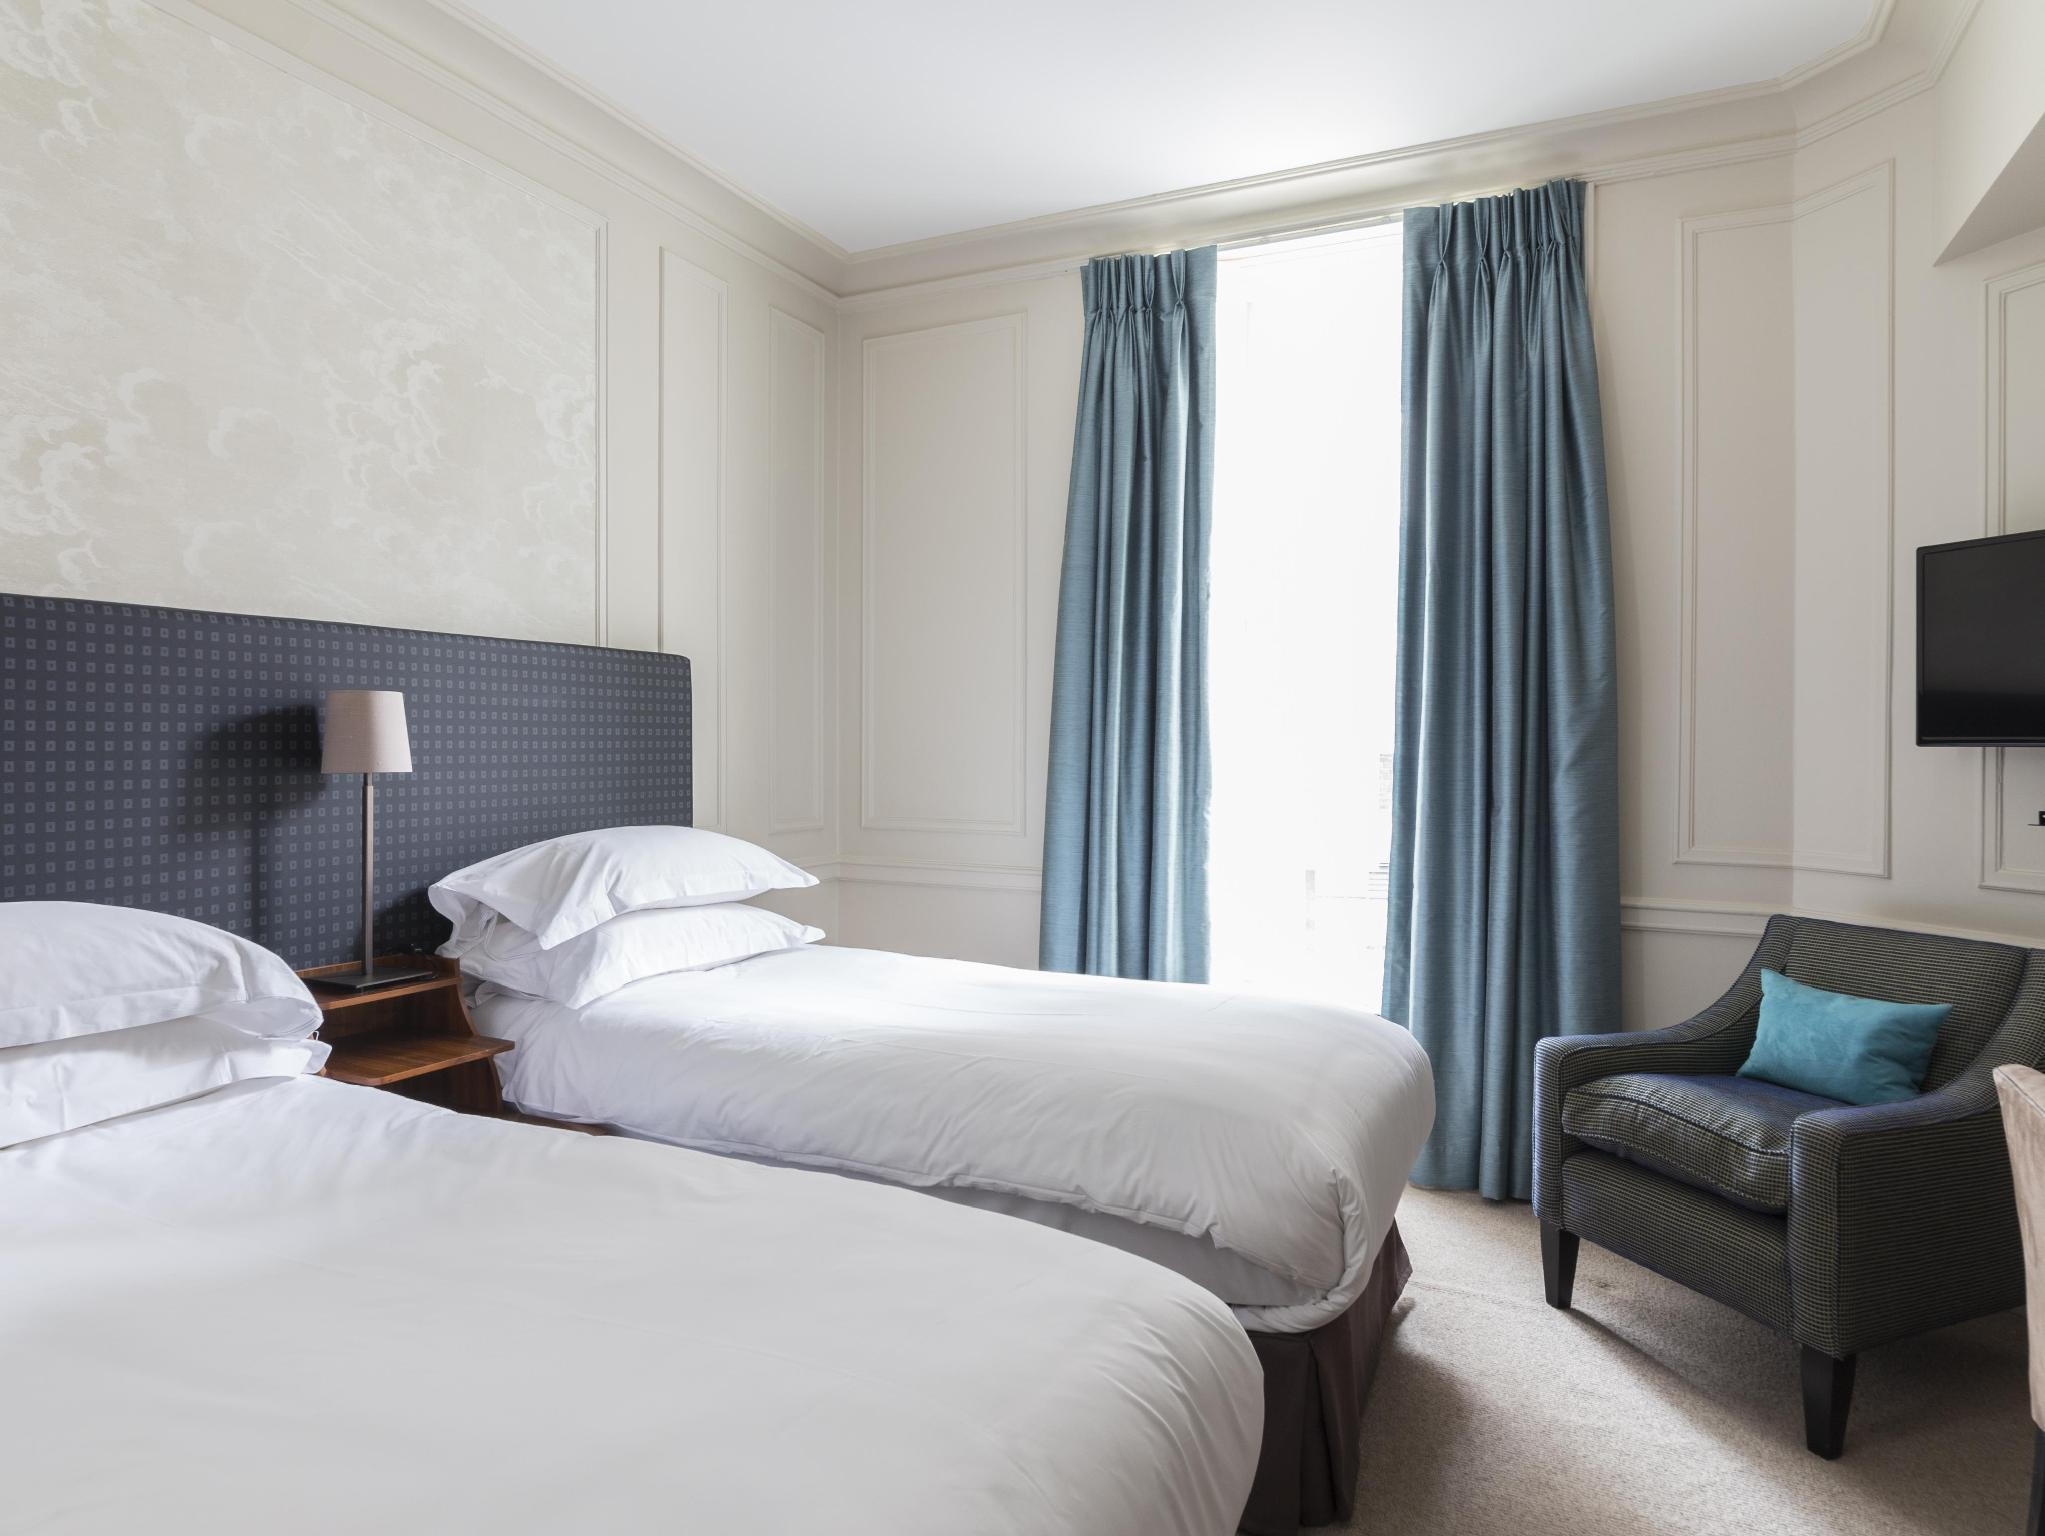 b2ec42e8c Sloane Square Hotel in London - Room Deals, Photos & Reviews